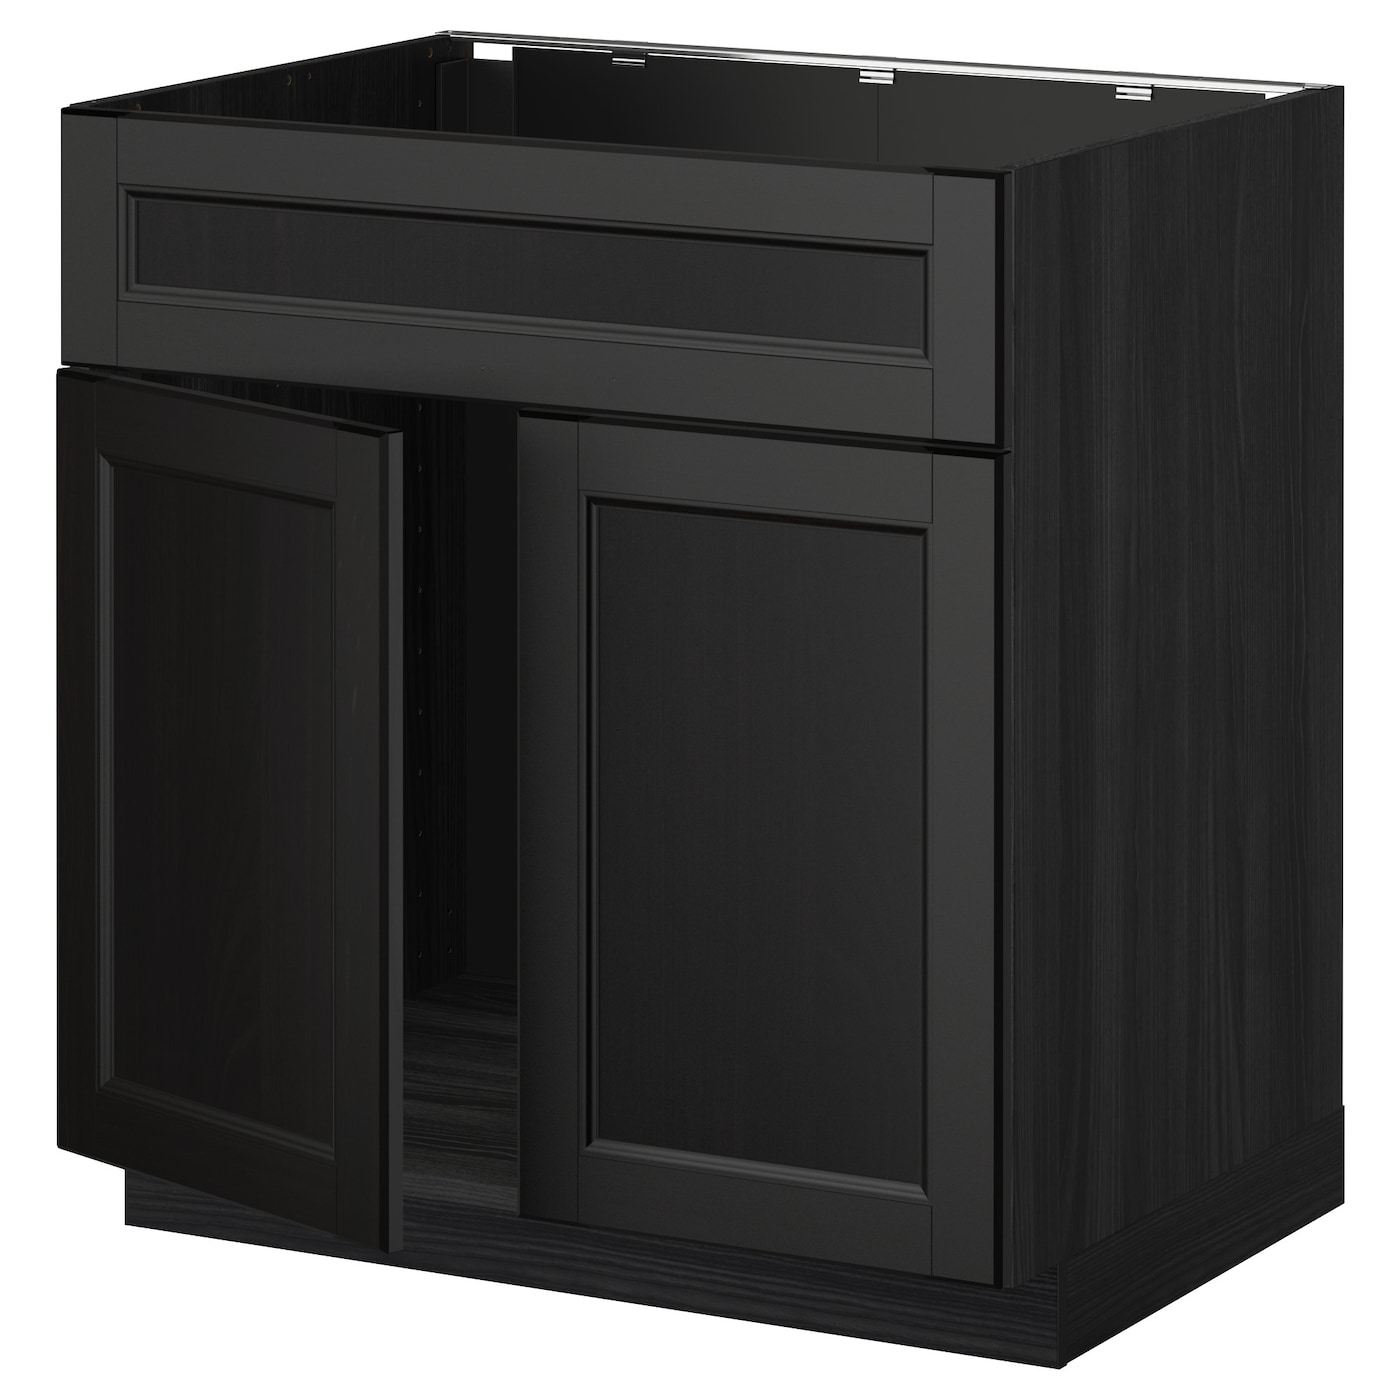 Metod base cabinet f sink w 2 doors front black laxarby for Black kitchen cabinet doors